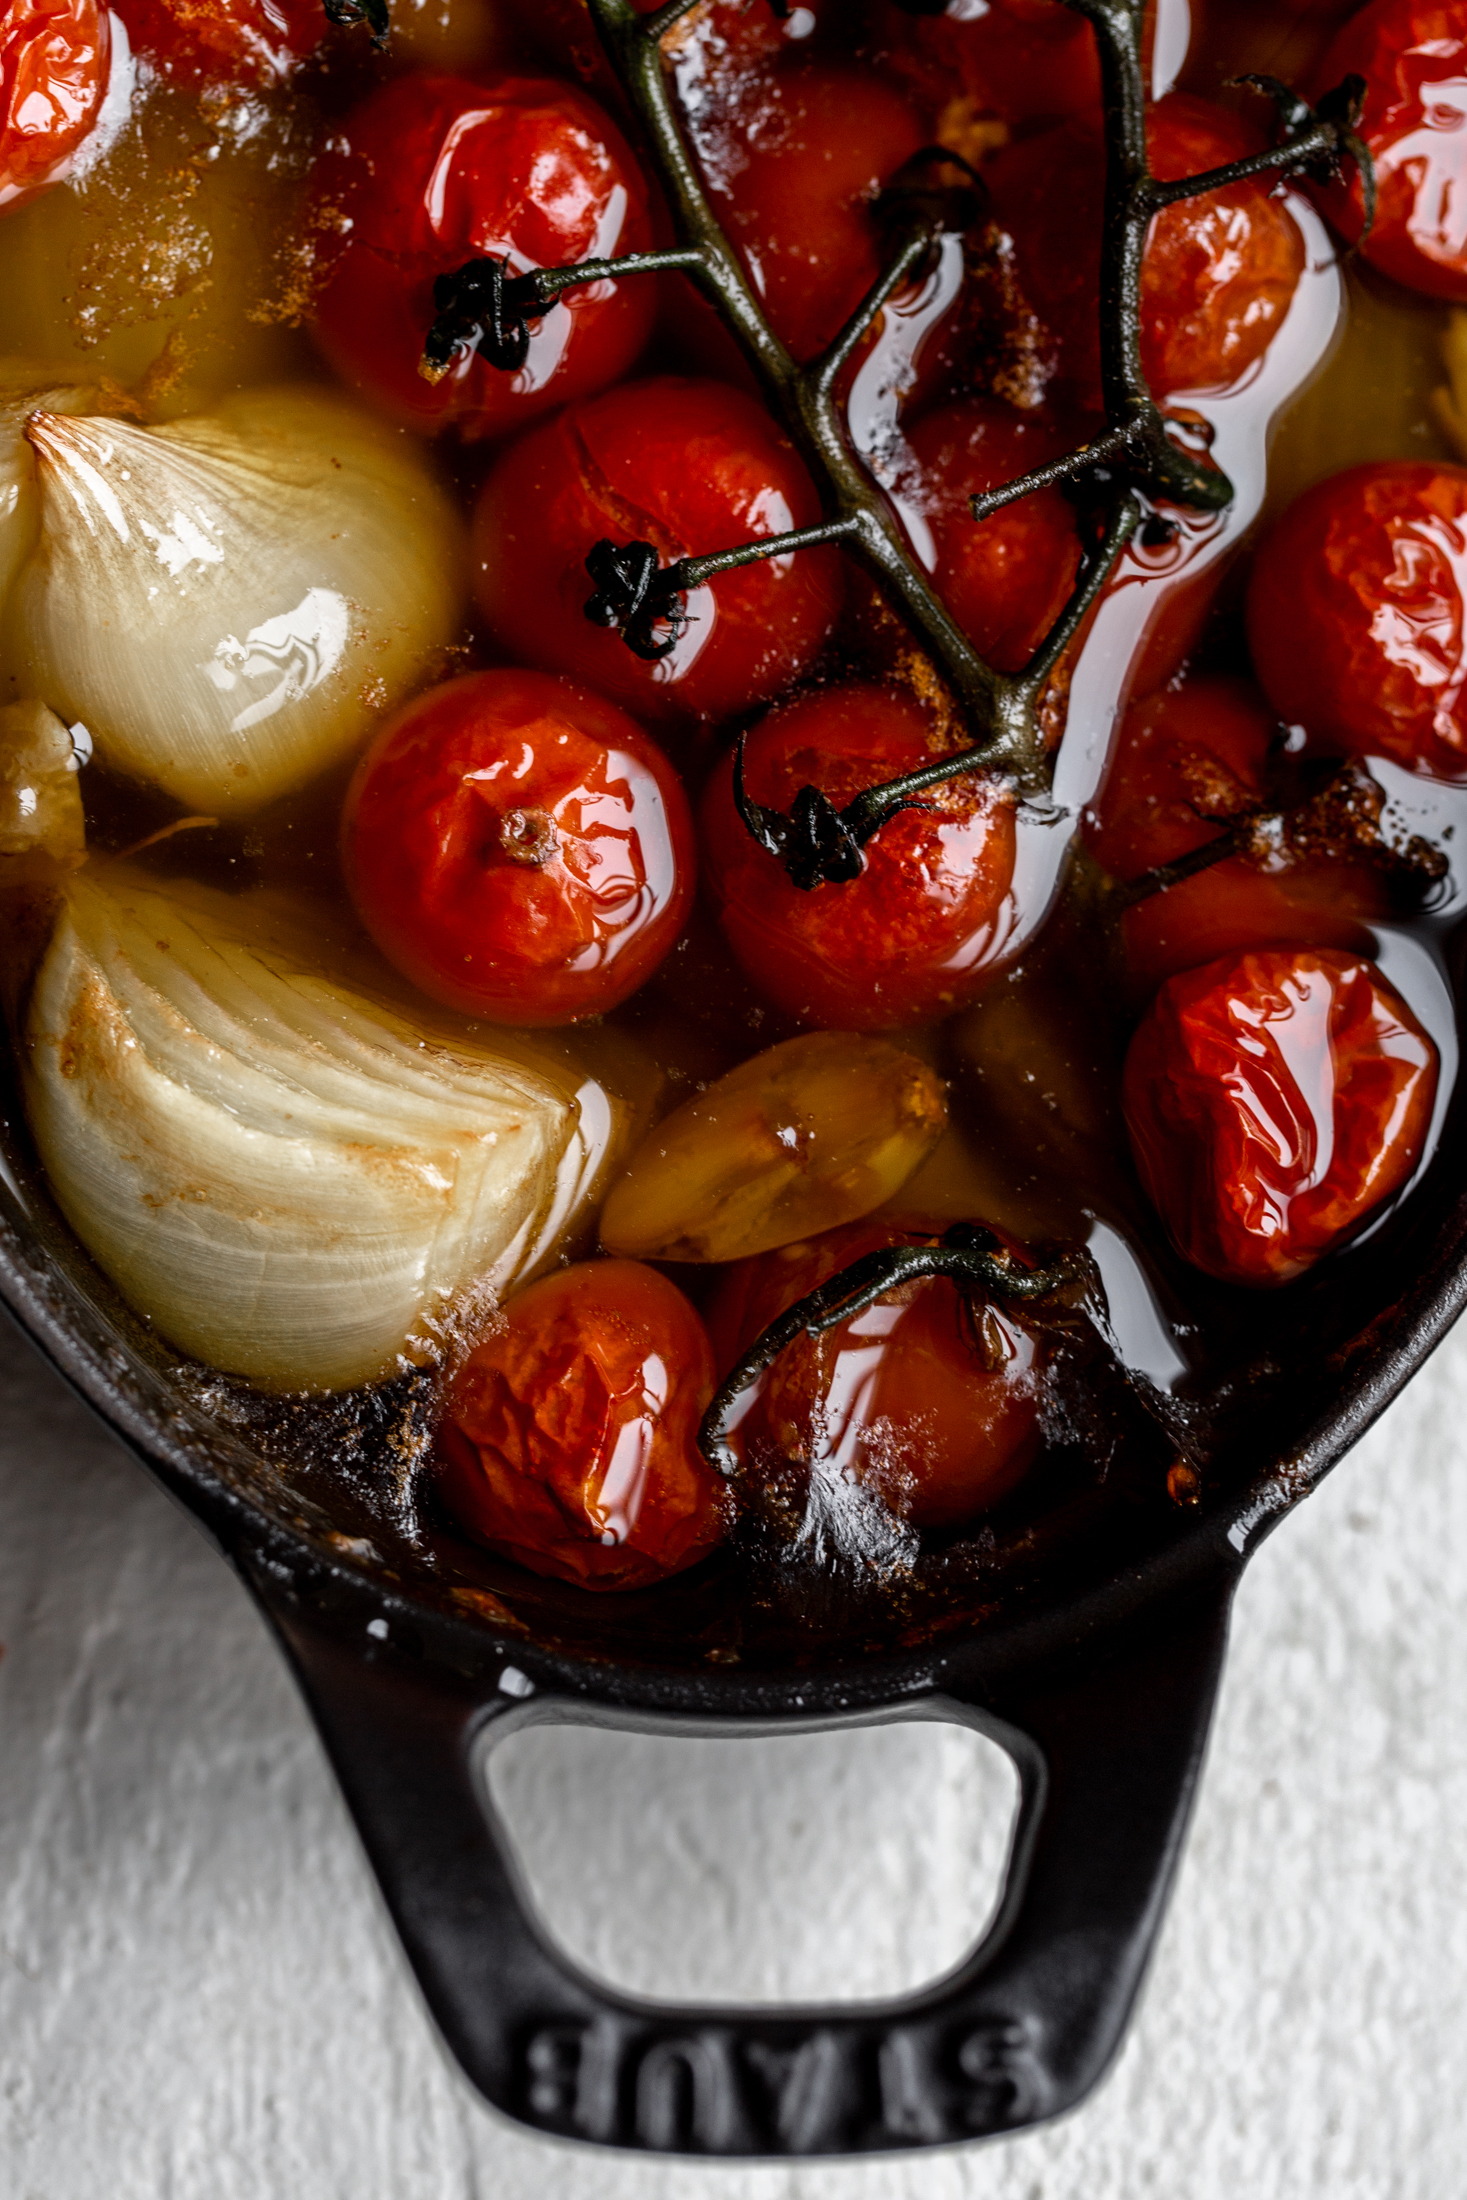 confit tomatoes, shallots and garlic